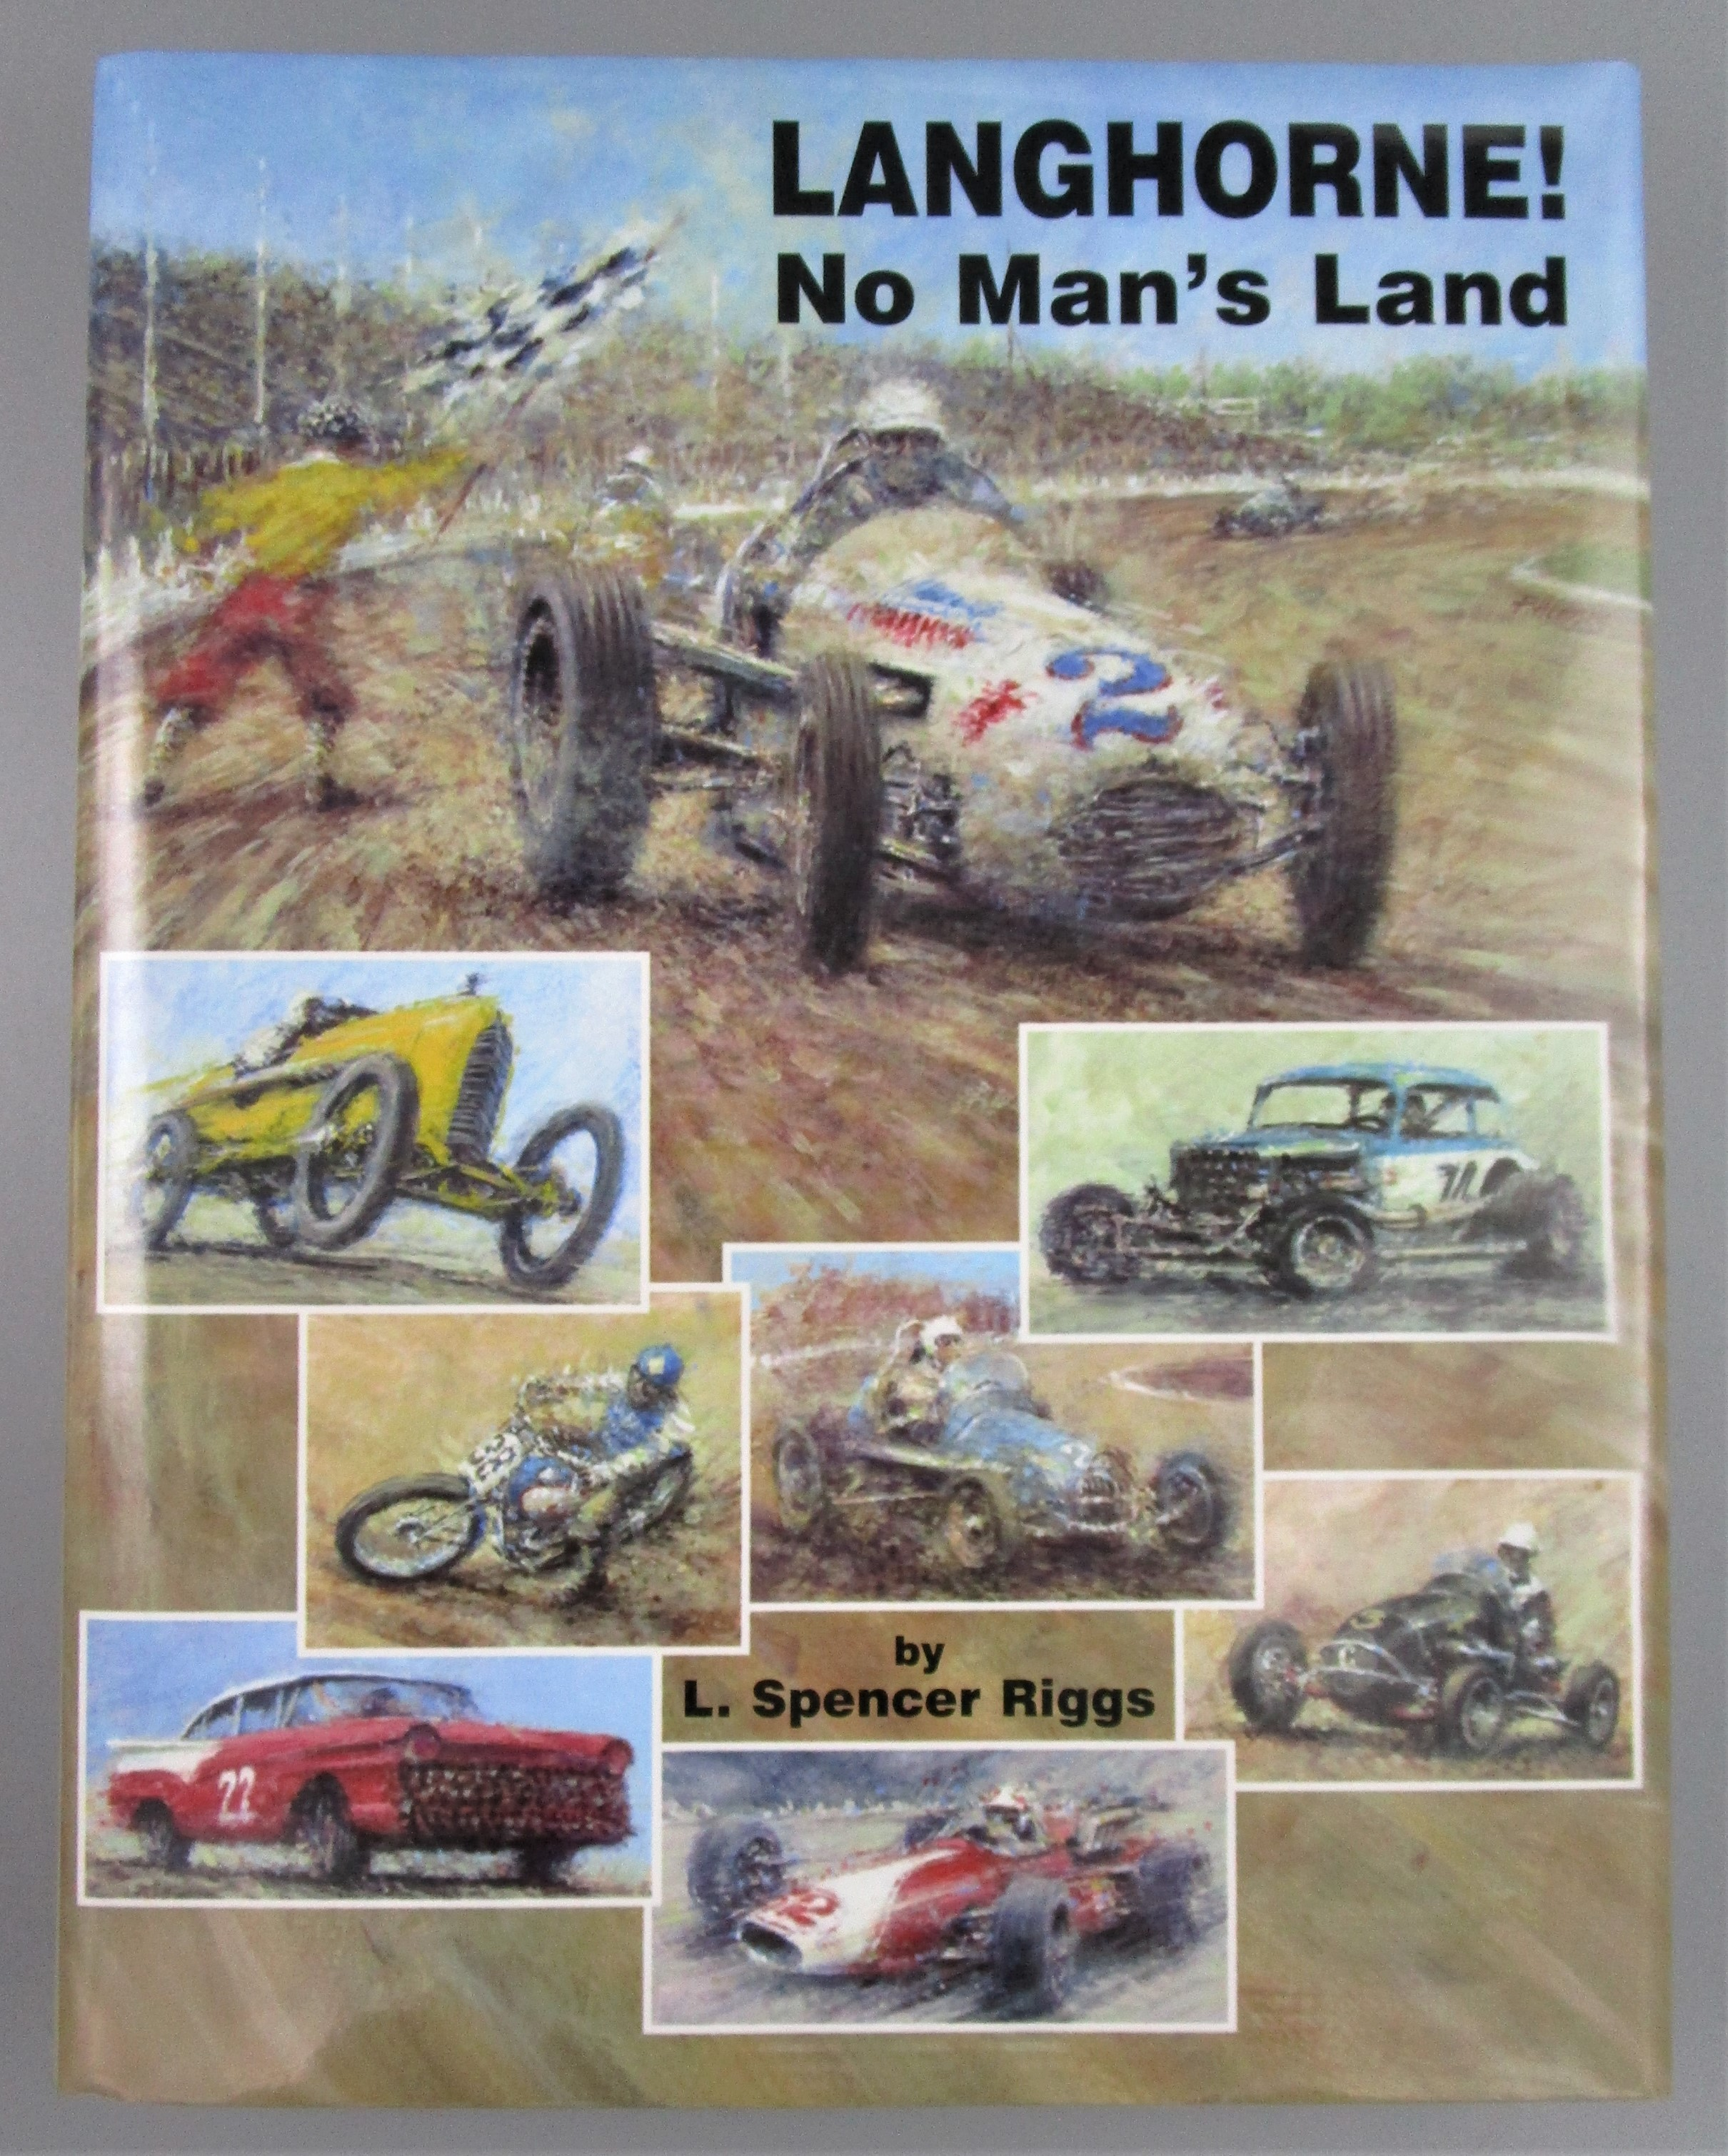 LANGHORNE! NO MAN'S LAND, by L. Spencer Riggs - 2008